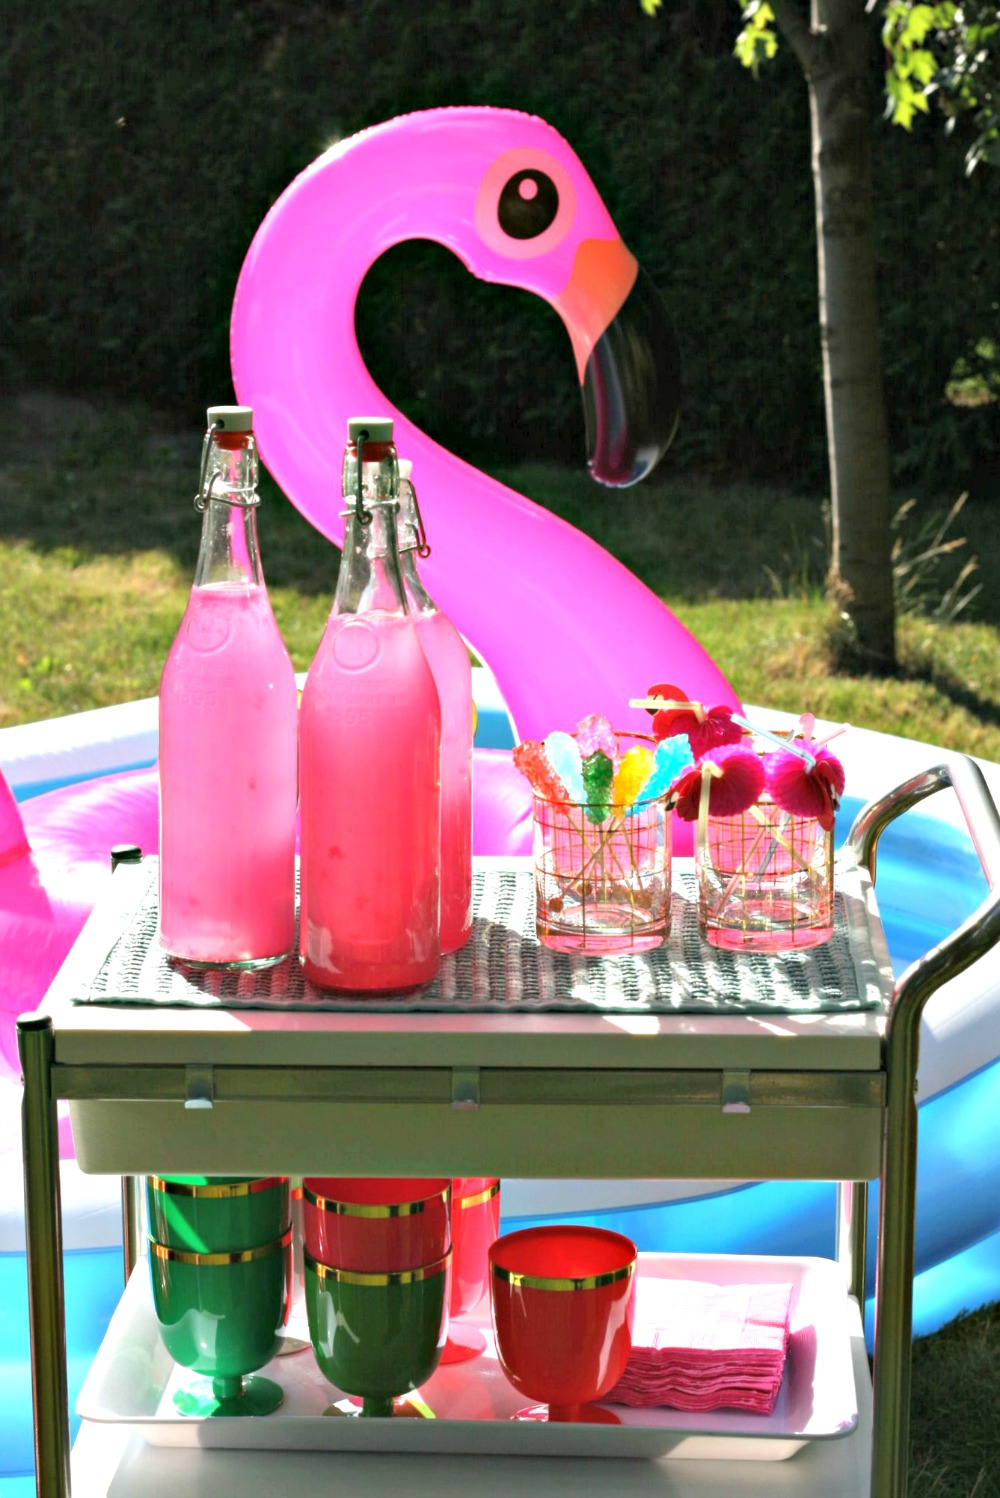 Lick Your Plate pink flamingo pool float and pink lemonade